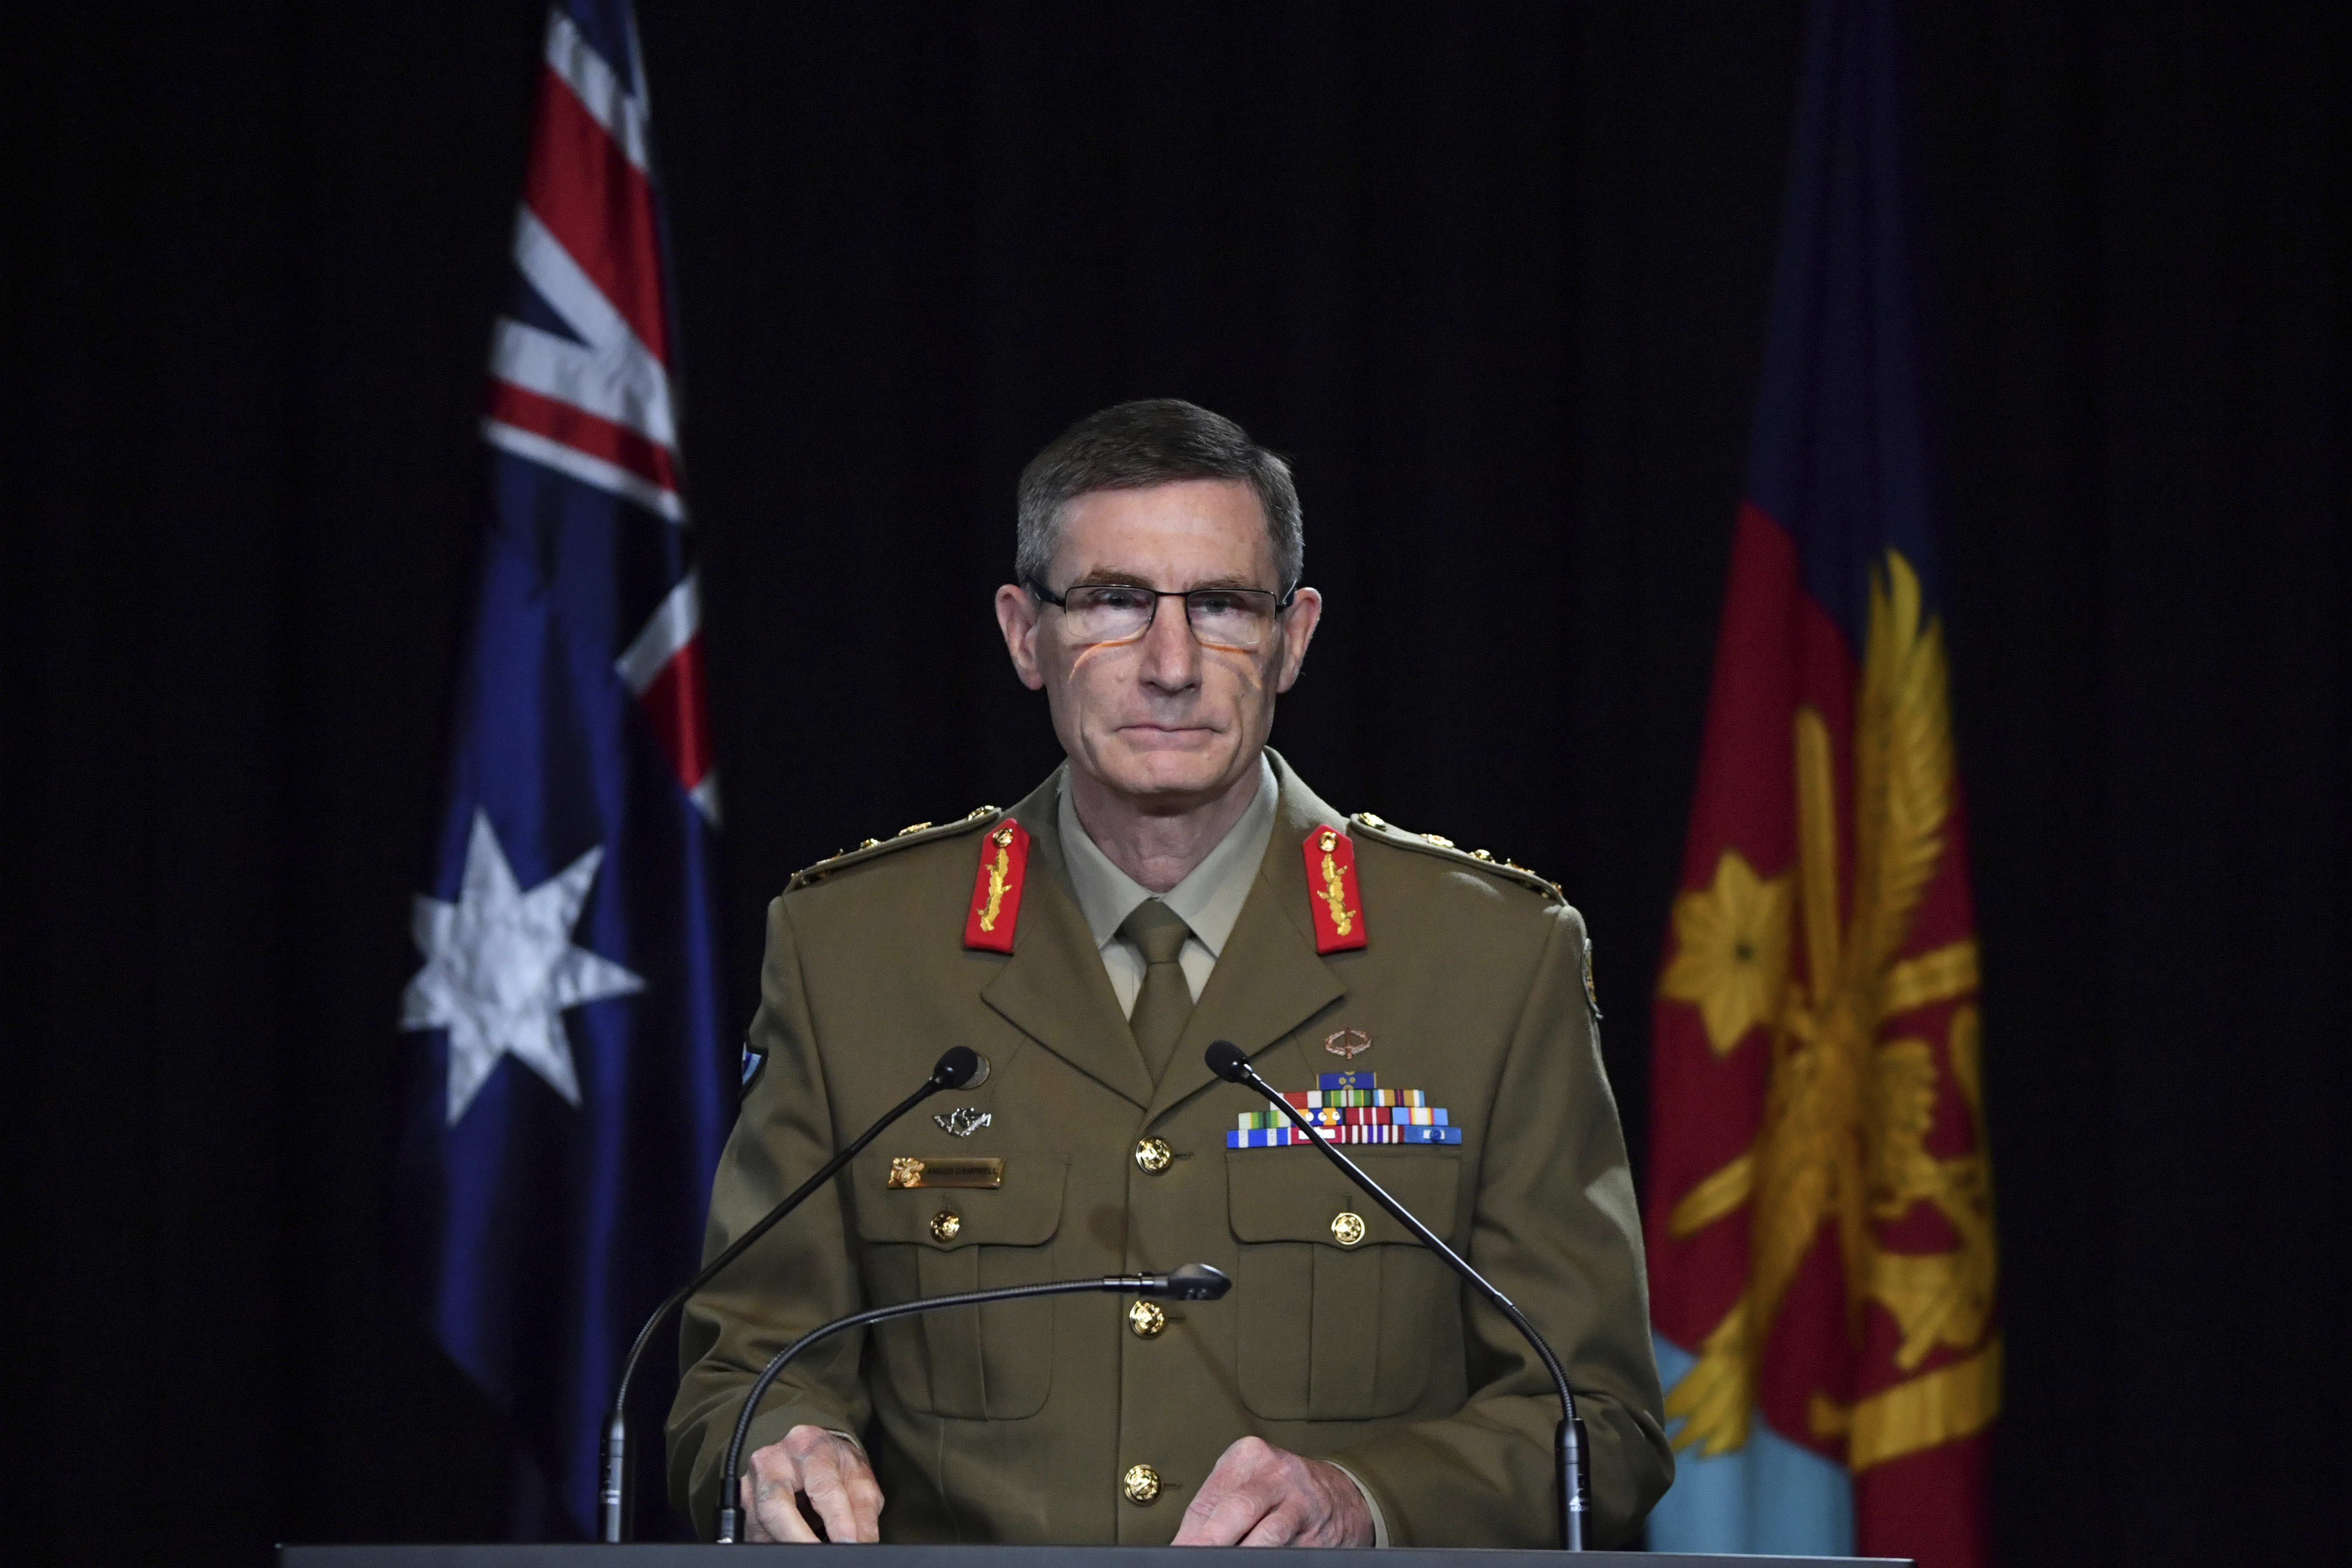 Chief of the Australian Defence Force Gen. Angus Campbell delivers the findings from the Inspector-General of the Australian Defence Force Afghanistan Inquiry, in Canberra, Thursday, Nov. 19, 2020.